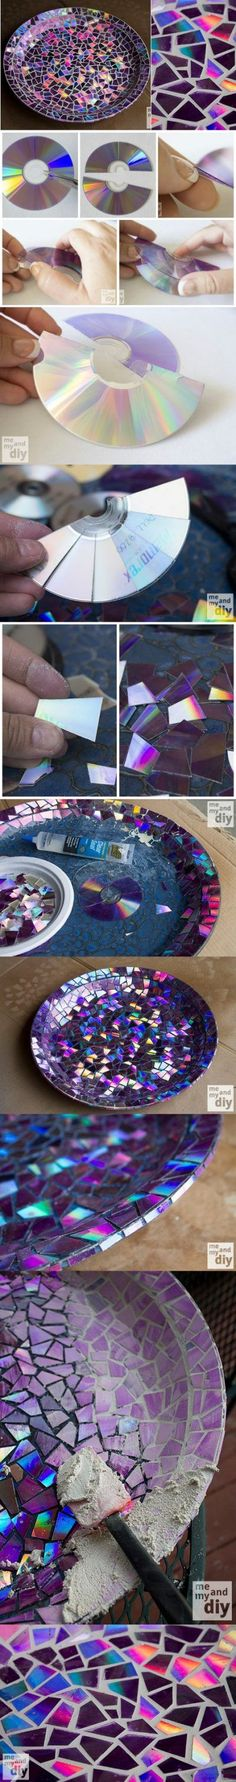 Make the best use of your creativity with these brilliant craft projects. Immediately try this Easy DIY Holiday Crafts! Cd Crafts, Diy Crafts To Sell, Diy Crafts For Kids, Home Crafts, Arts And Crafts, Easy Crafts, Diy Niños Manualidades, Art Diy, Diy Décoration